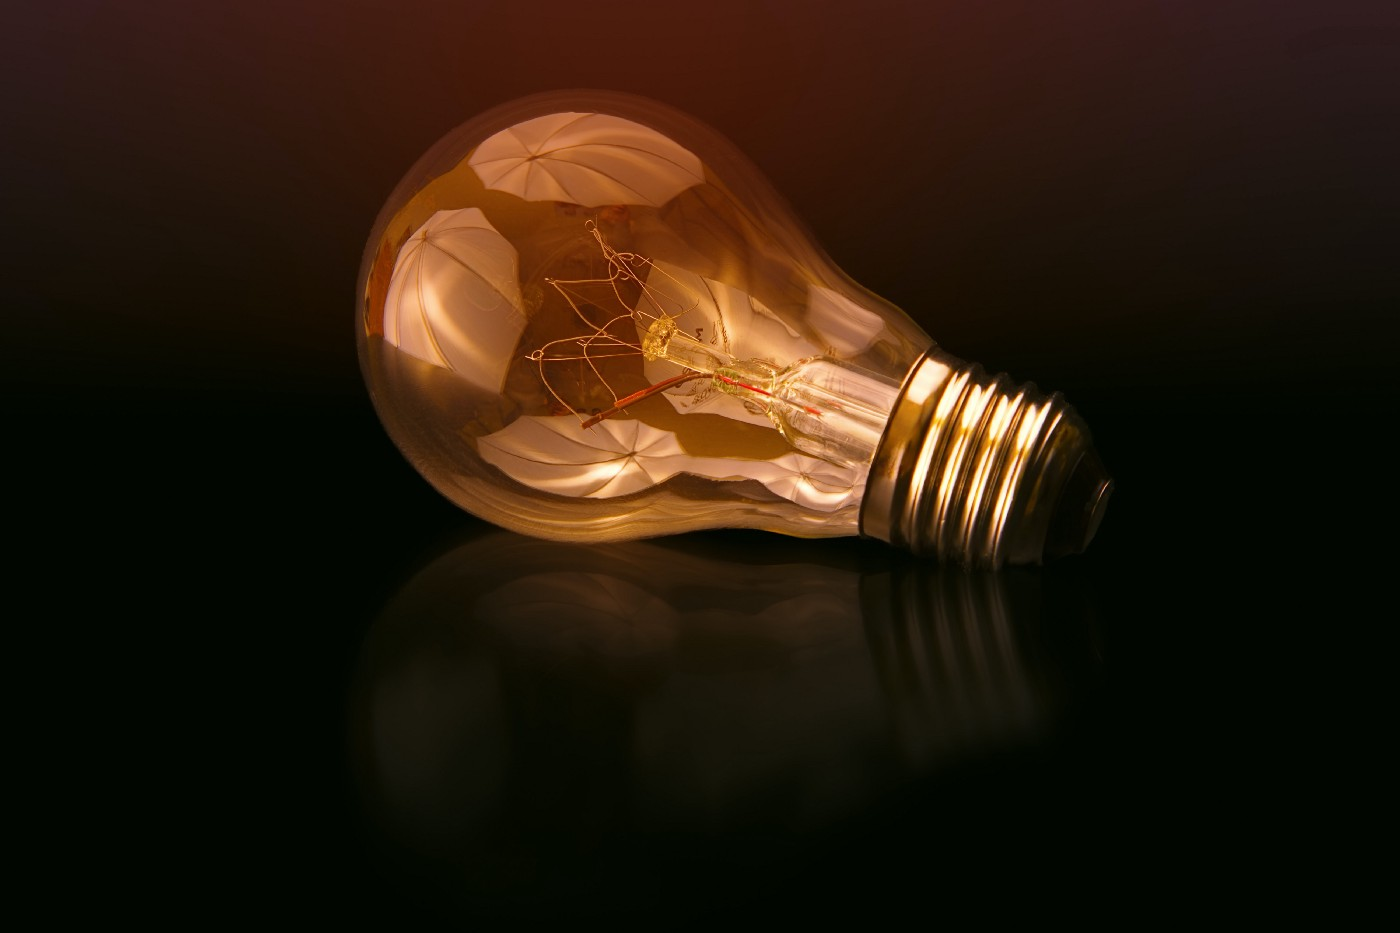 Photo of lightbulb by Johannes Plenio from Pexels